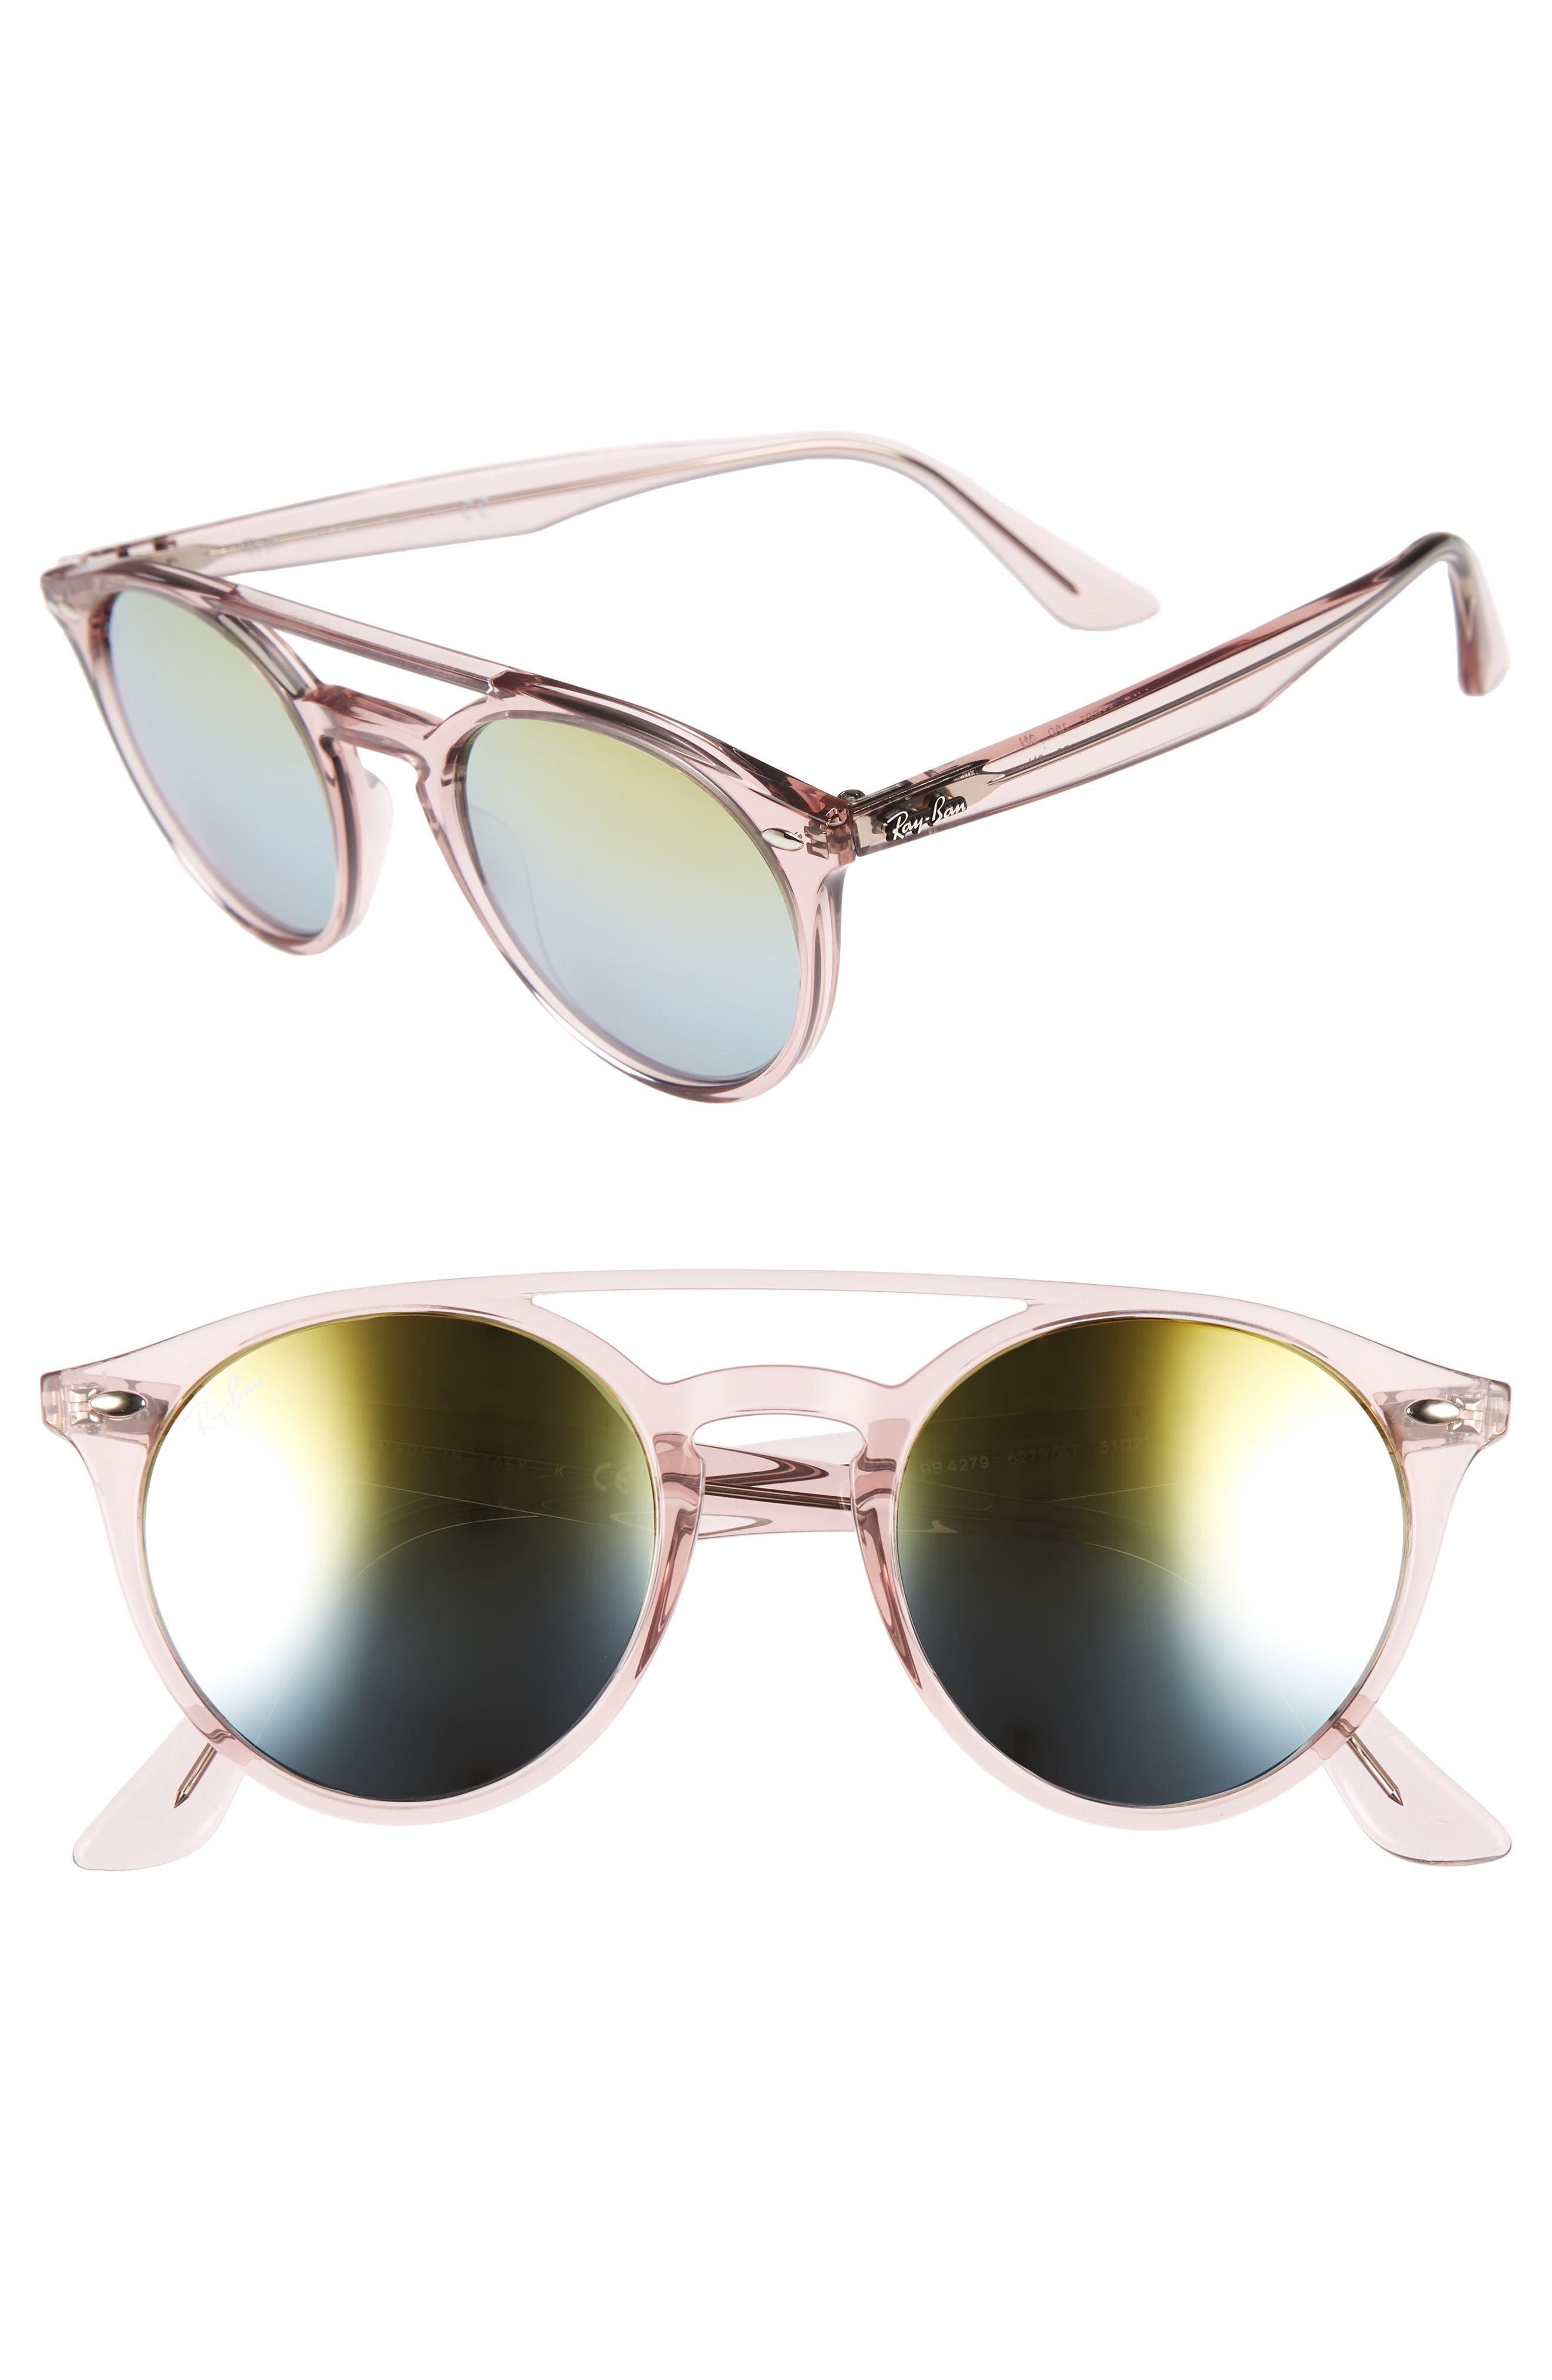 Alternate Image 1 Selected - Ray-Ban 51mm Mirrored Rainbow Sunglasses